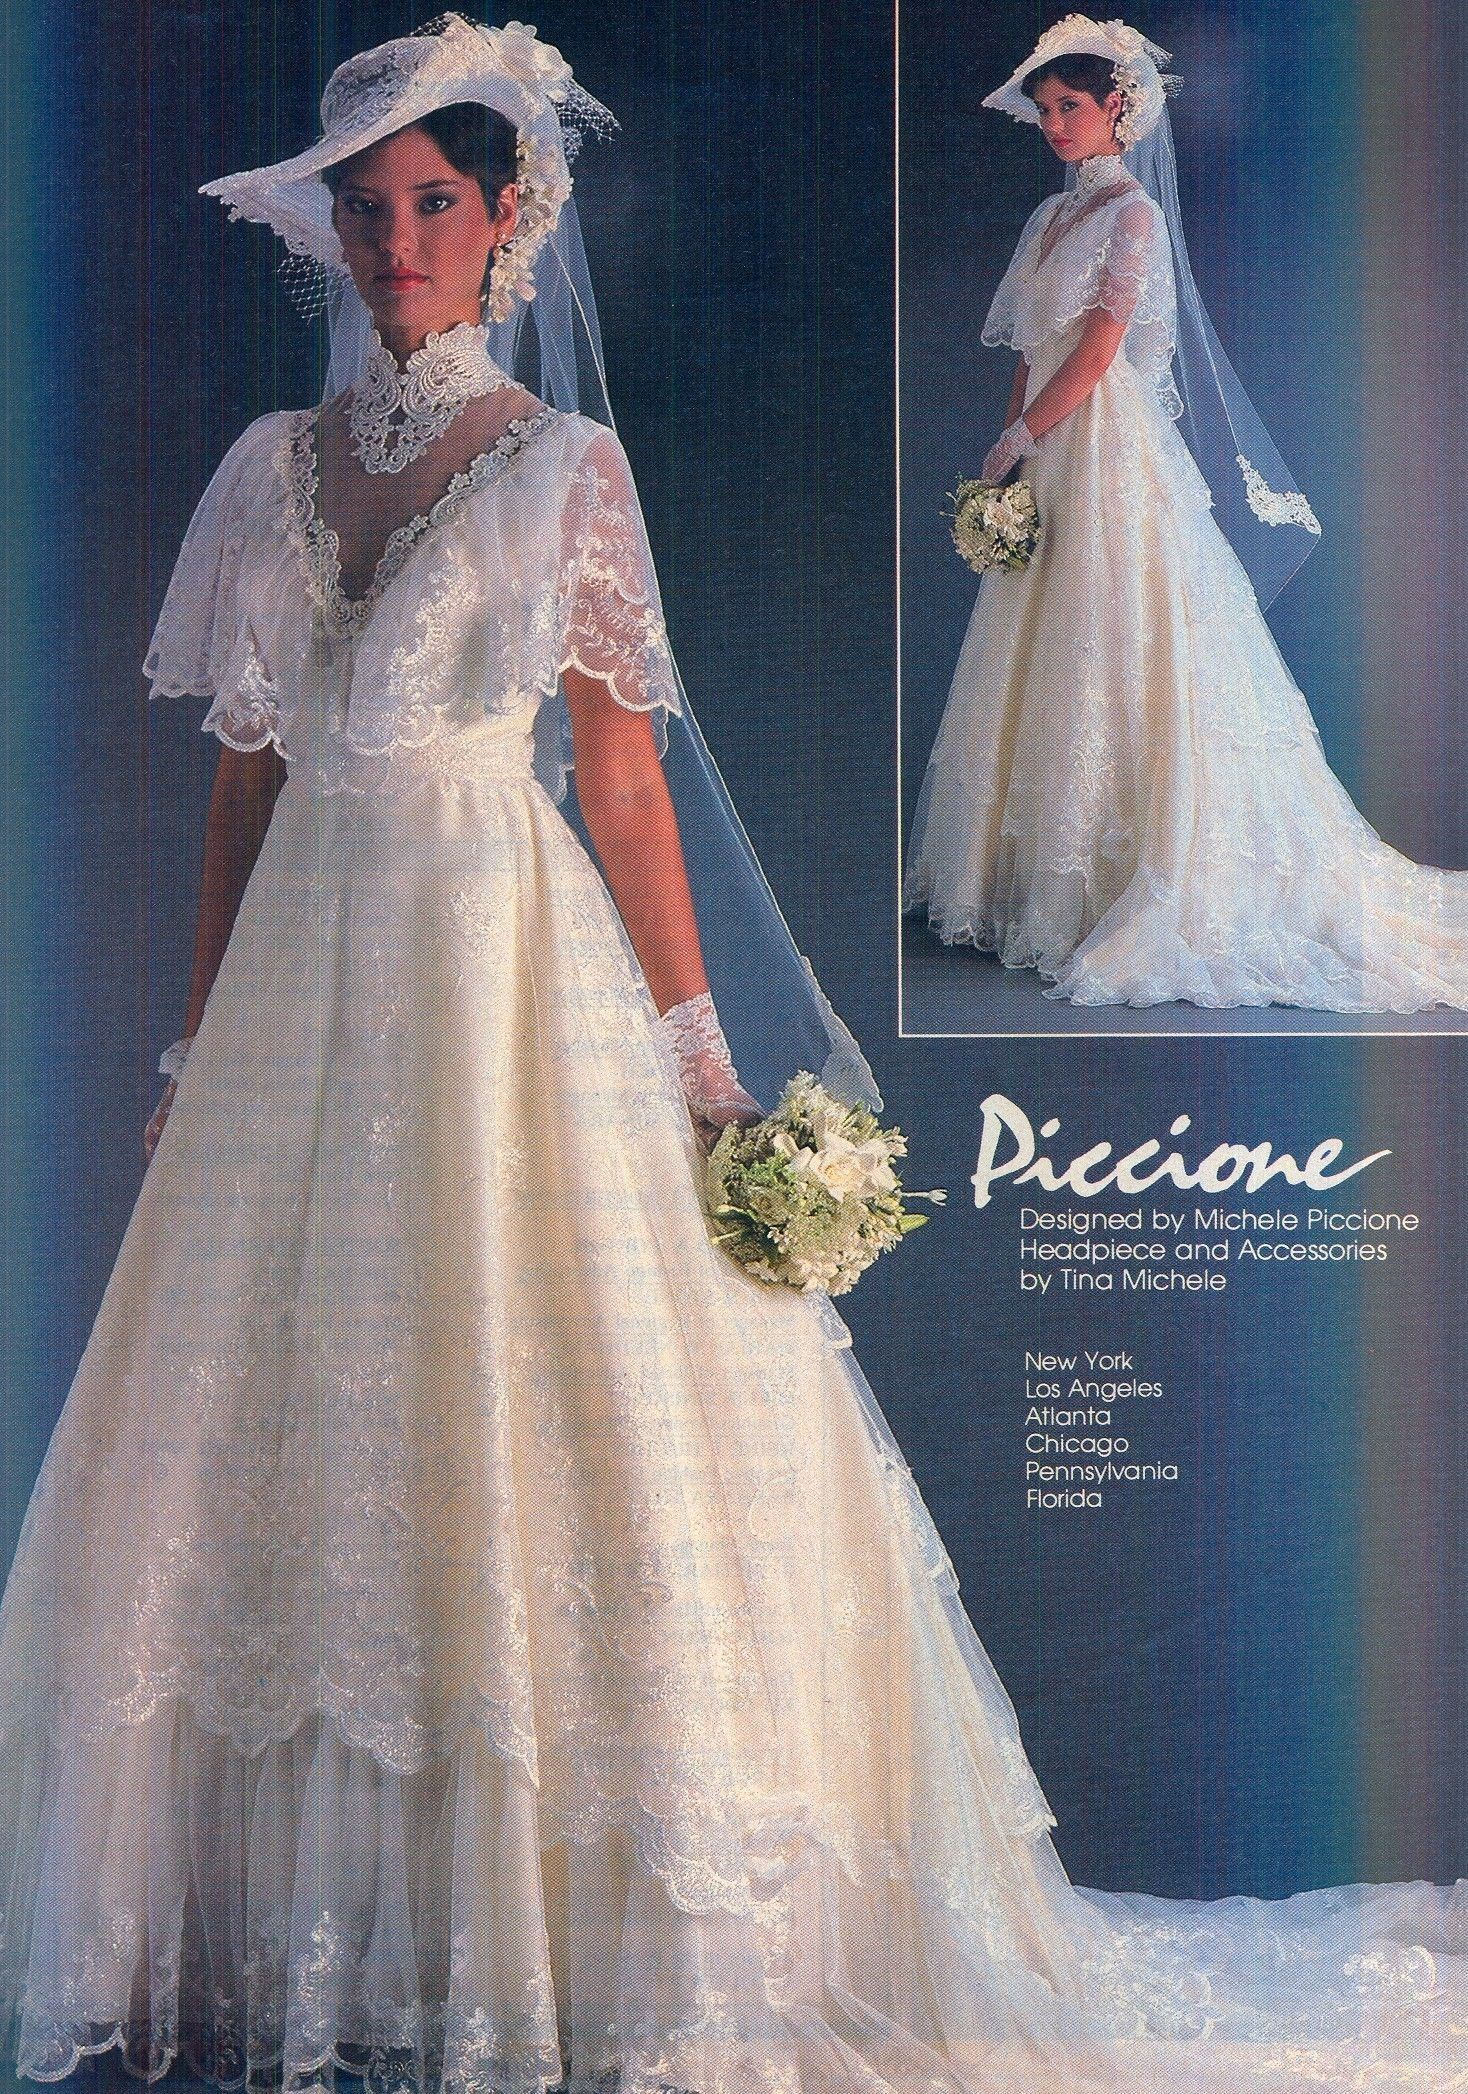 Suggested Sites Hint Wedbridal Site Clean Commerce Immediately This Instant Used Online Online Store Very Cheap Quality Online Sales Wedding Dresses Vintage Wedding Gowns Vintage Wedding Dresses 80s